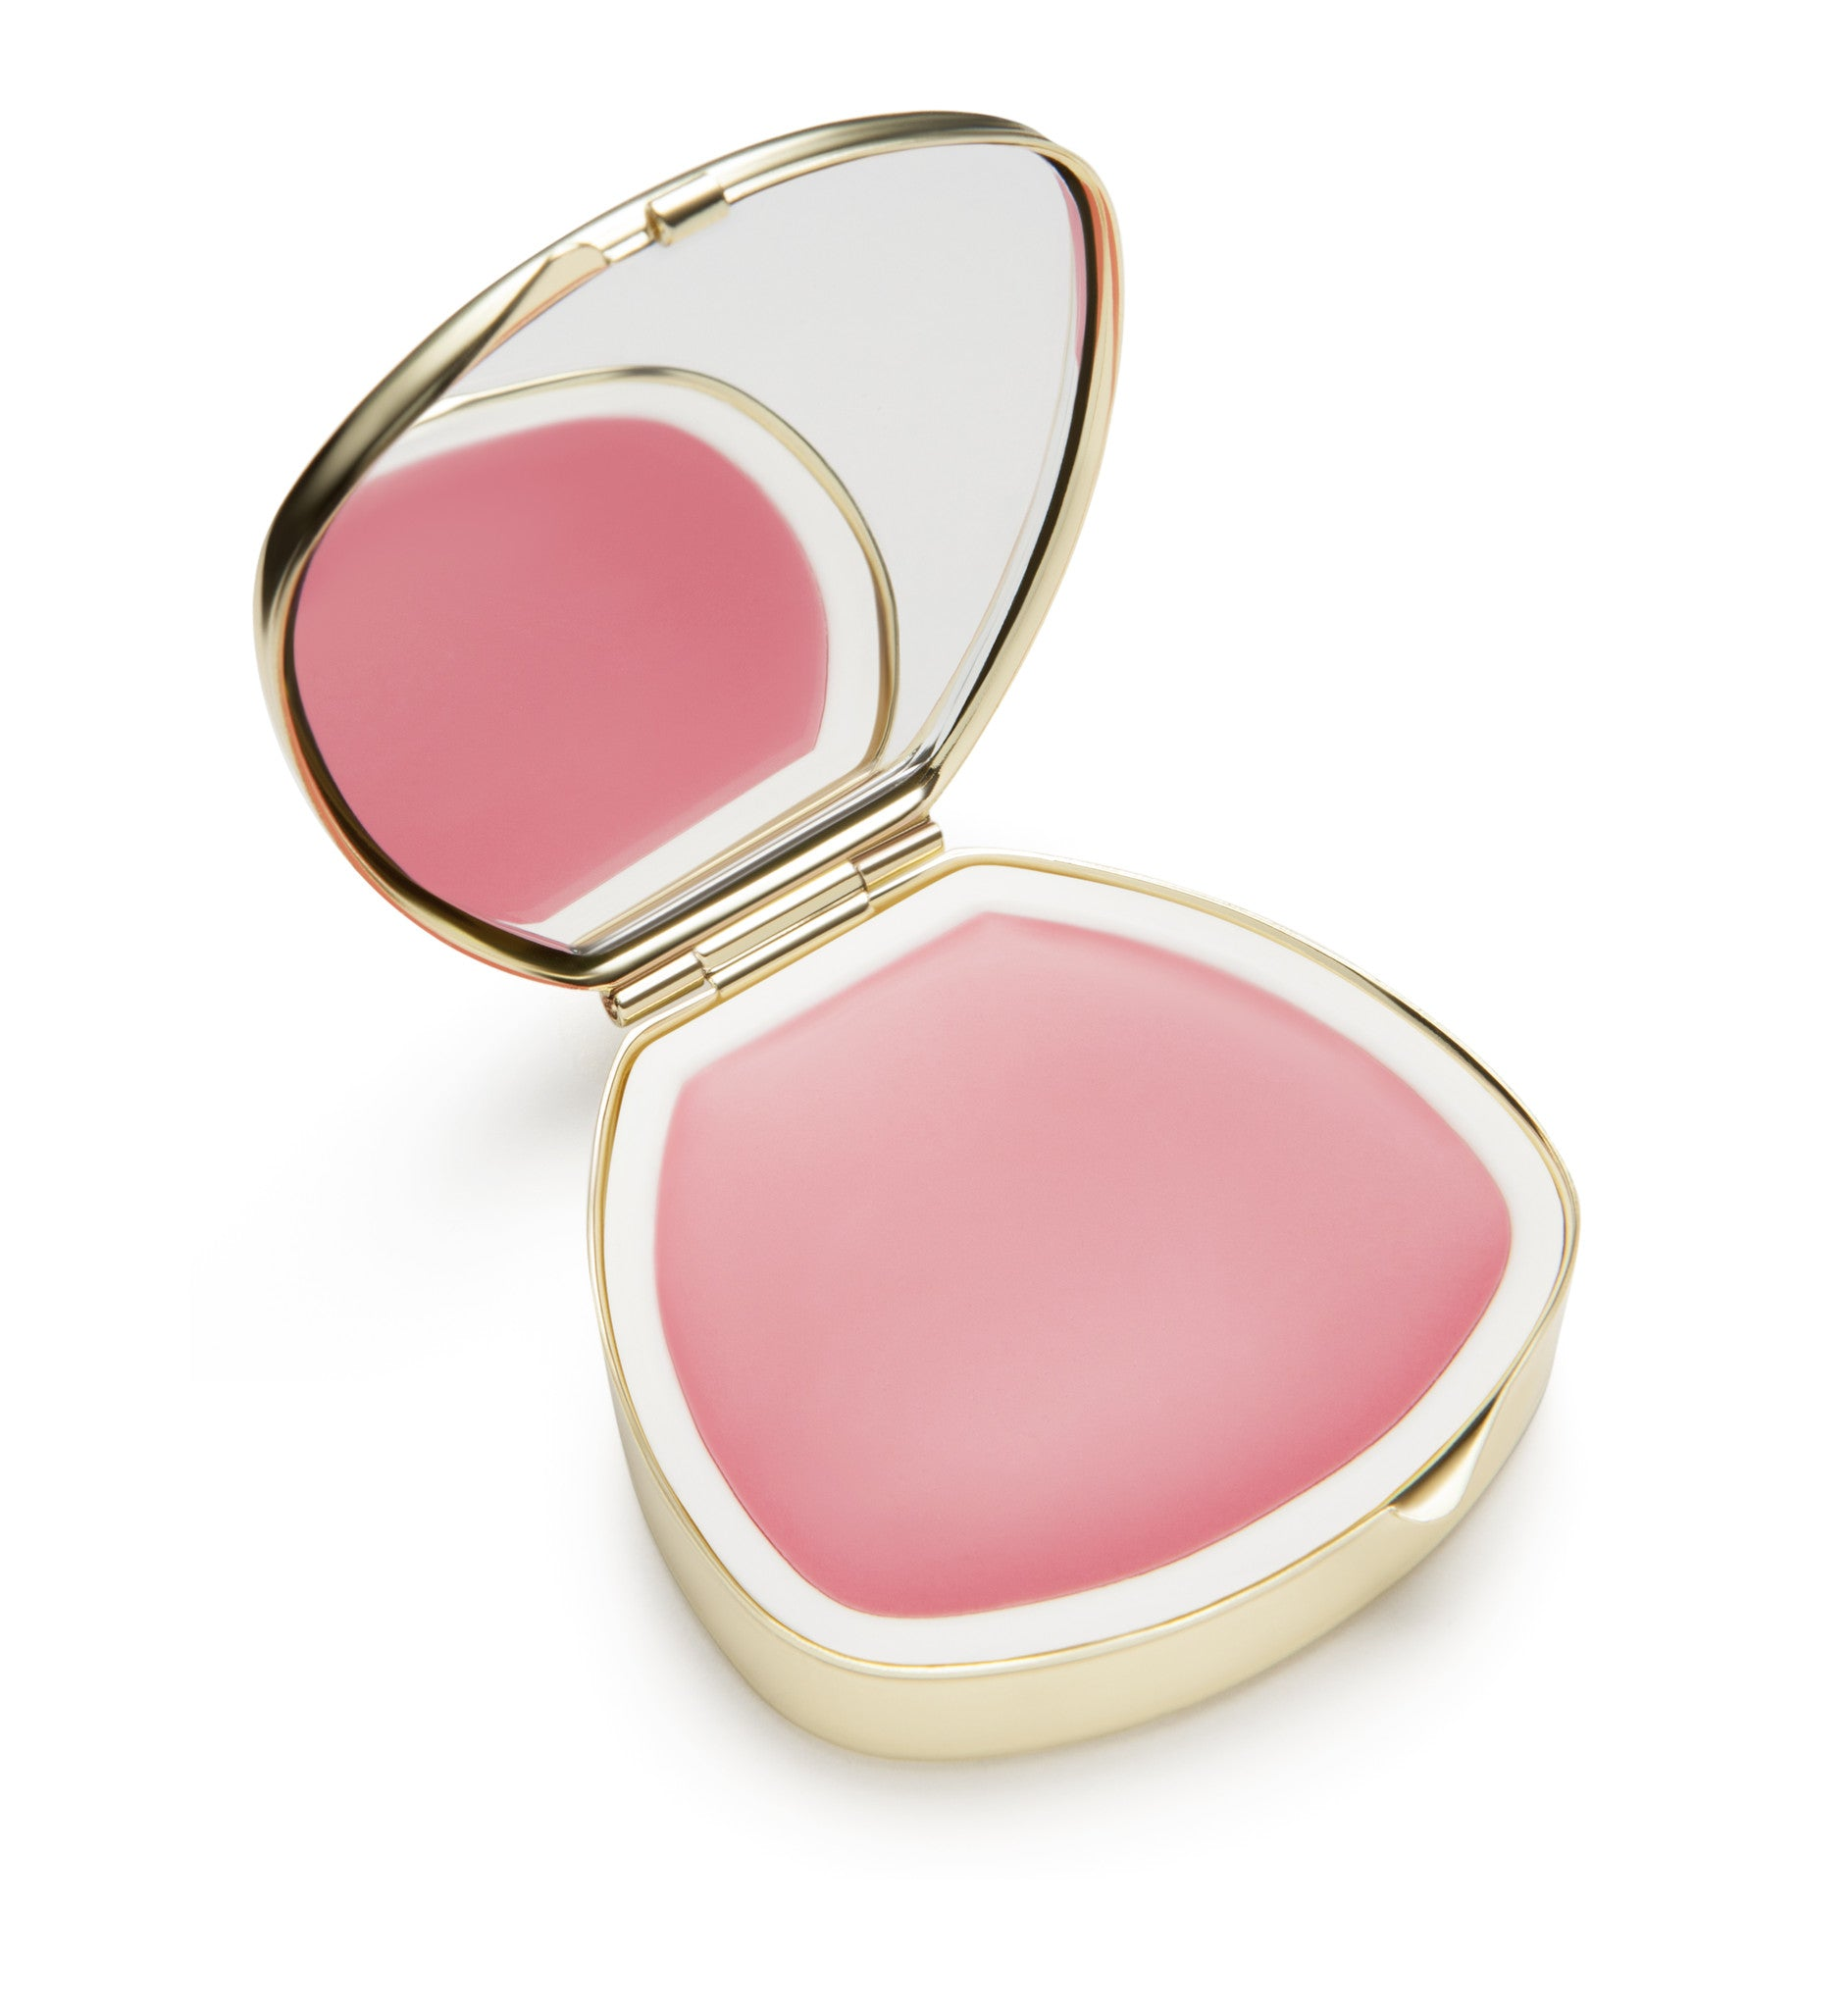 Lip Balm Compact - Hide and Seek Kitty in Dog Roses - Andrea Garland